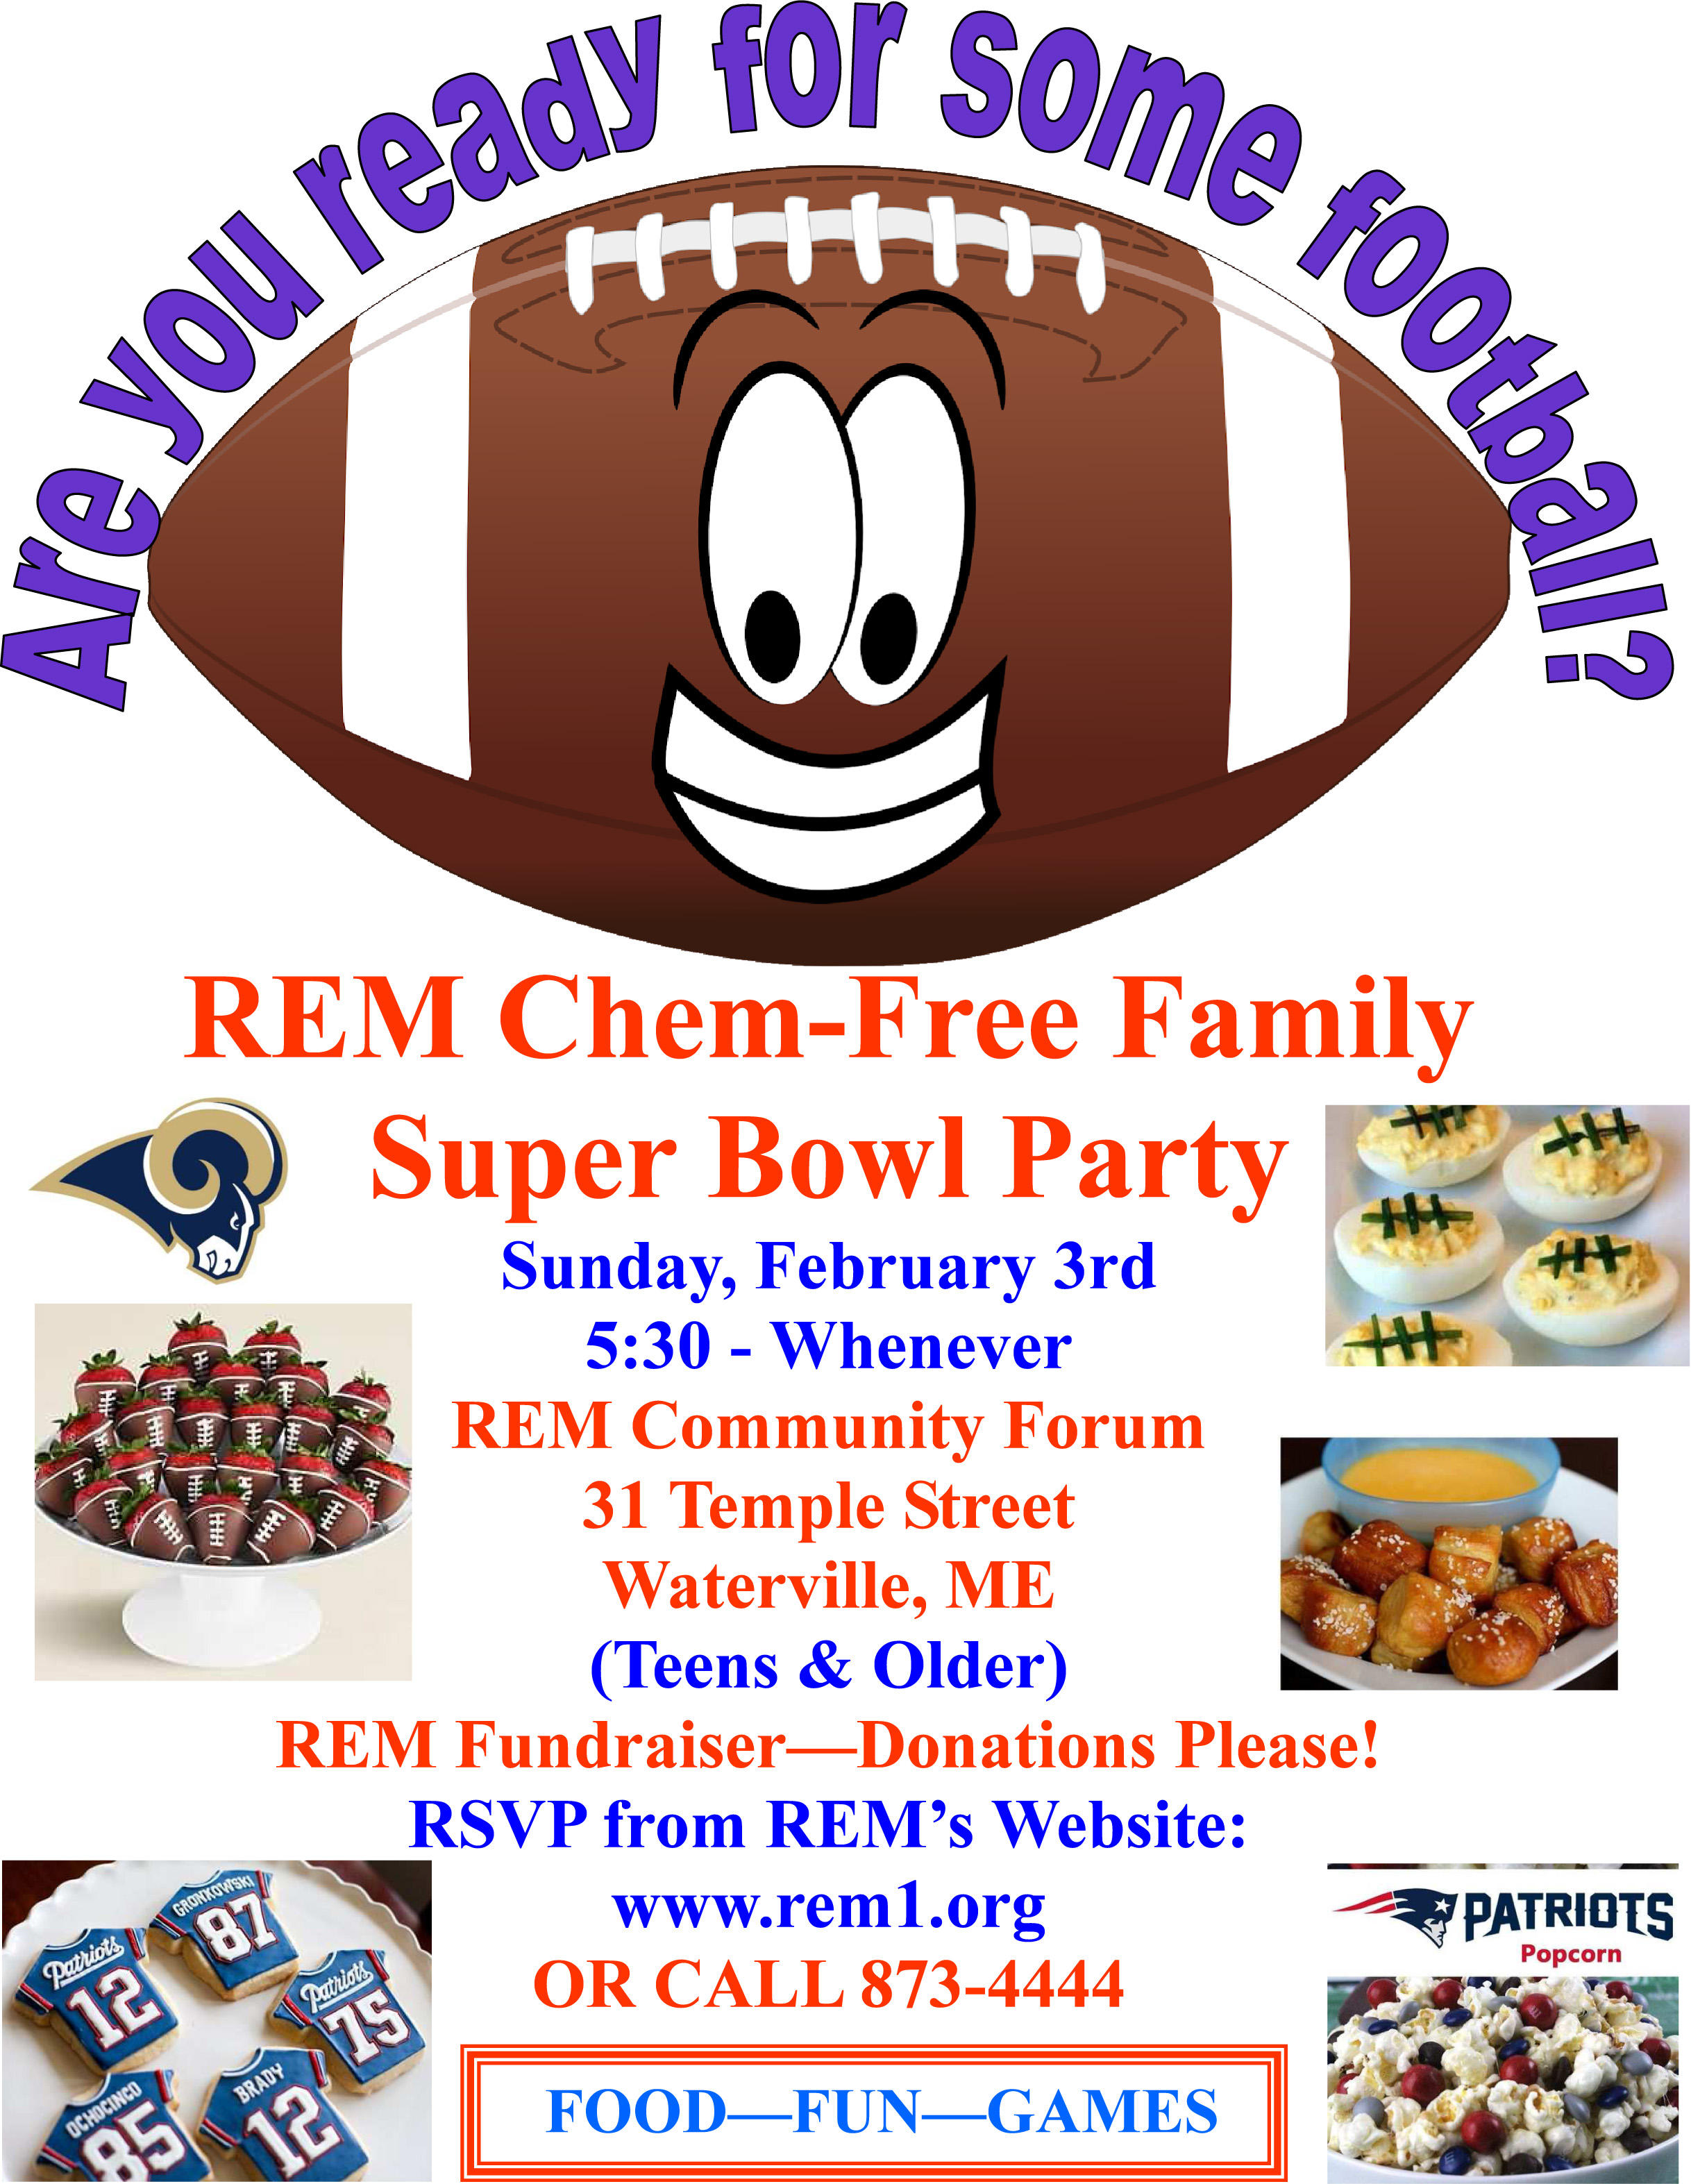 REM Chem-Free Family Super Bowl Party Sunday, February 3rd 5:30 - Whenever REM Community Forum 31 Temple Street Waterville, ME (Teens & Older) REM Fundraiser—Donations Please! RSVP from REM's Website: www.rem1.org OR CALL 873-4444